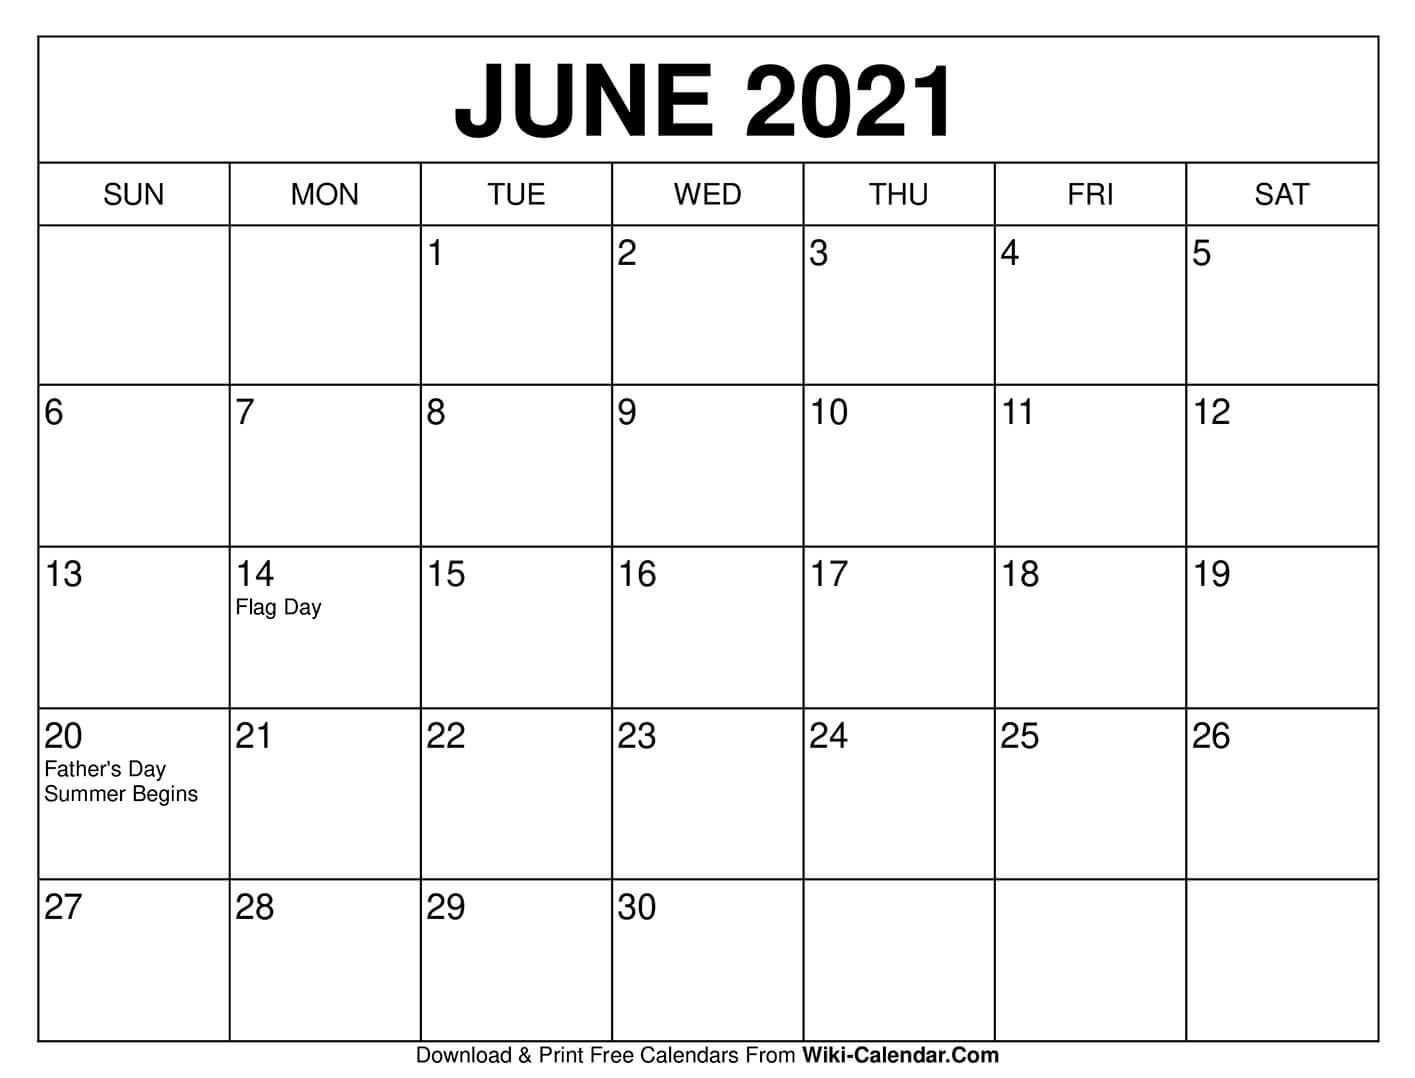 June 2021 Calendar | Free calendars to print, Calendar printables